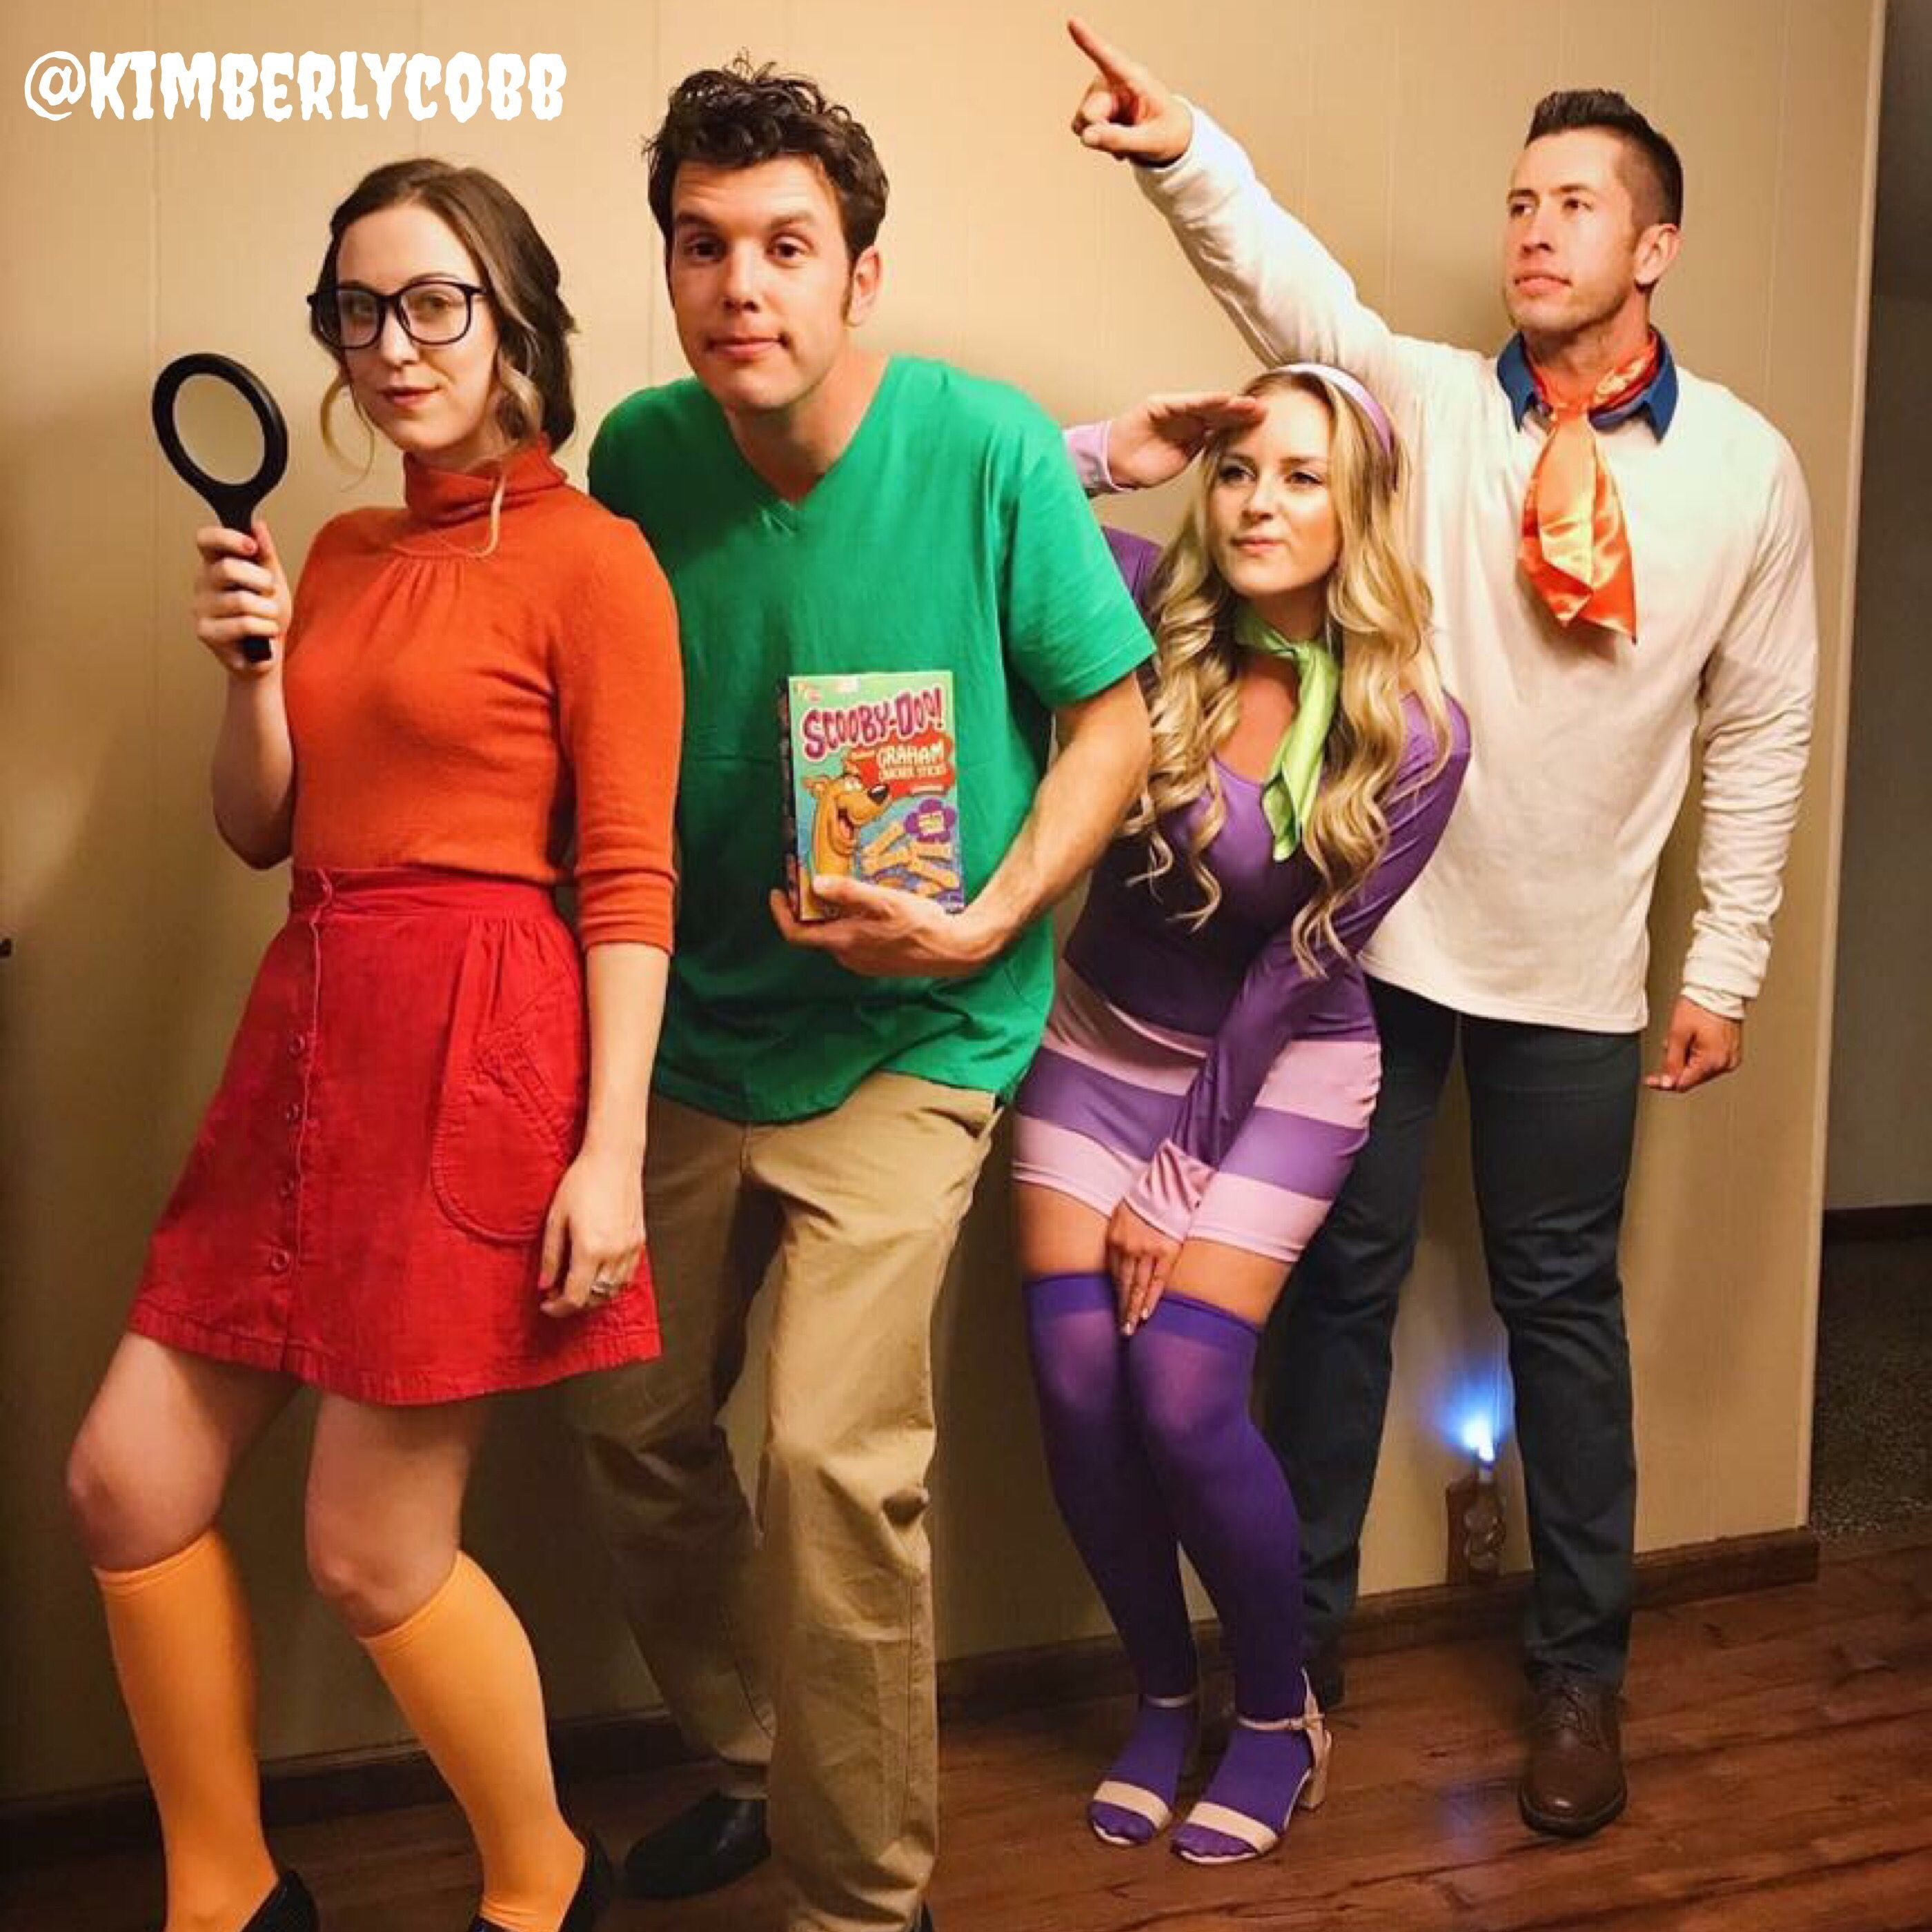 Best Mens Halloween Costumes 2020 Best Halloween group costume, group of four people, scooby doo